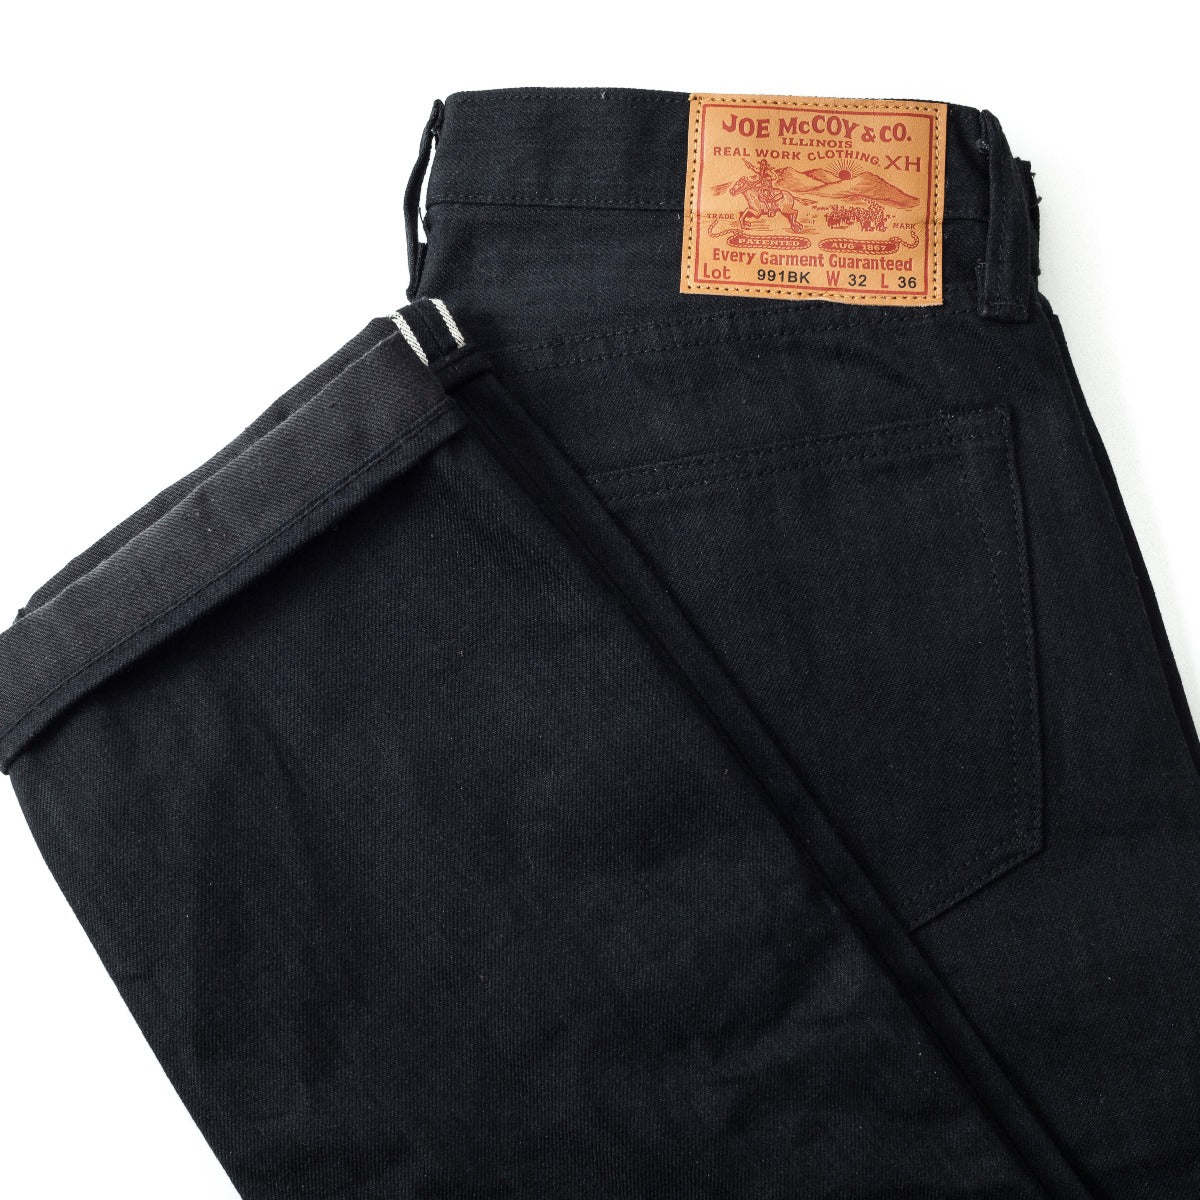 The Real McCoy's Joe McCoy Black Denim Pants